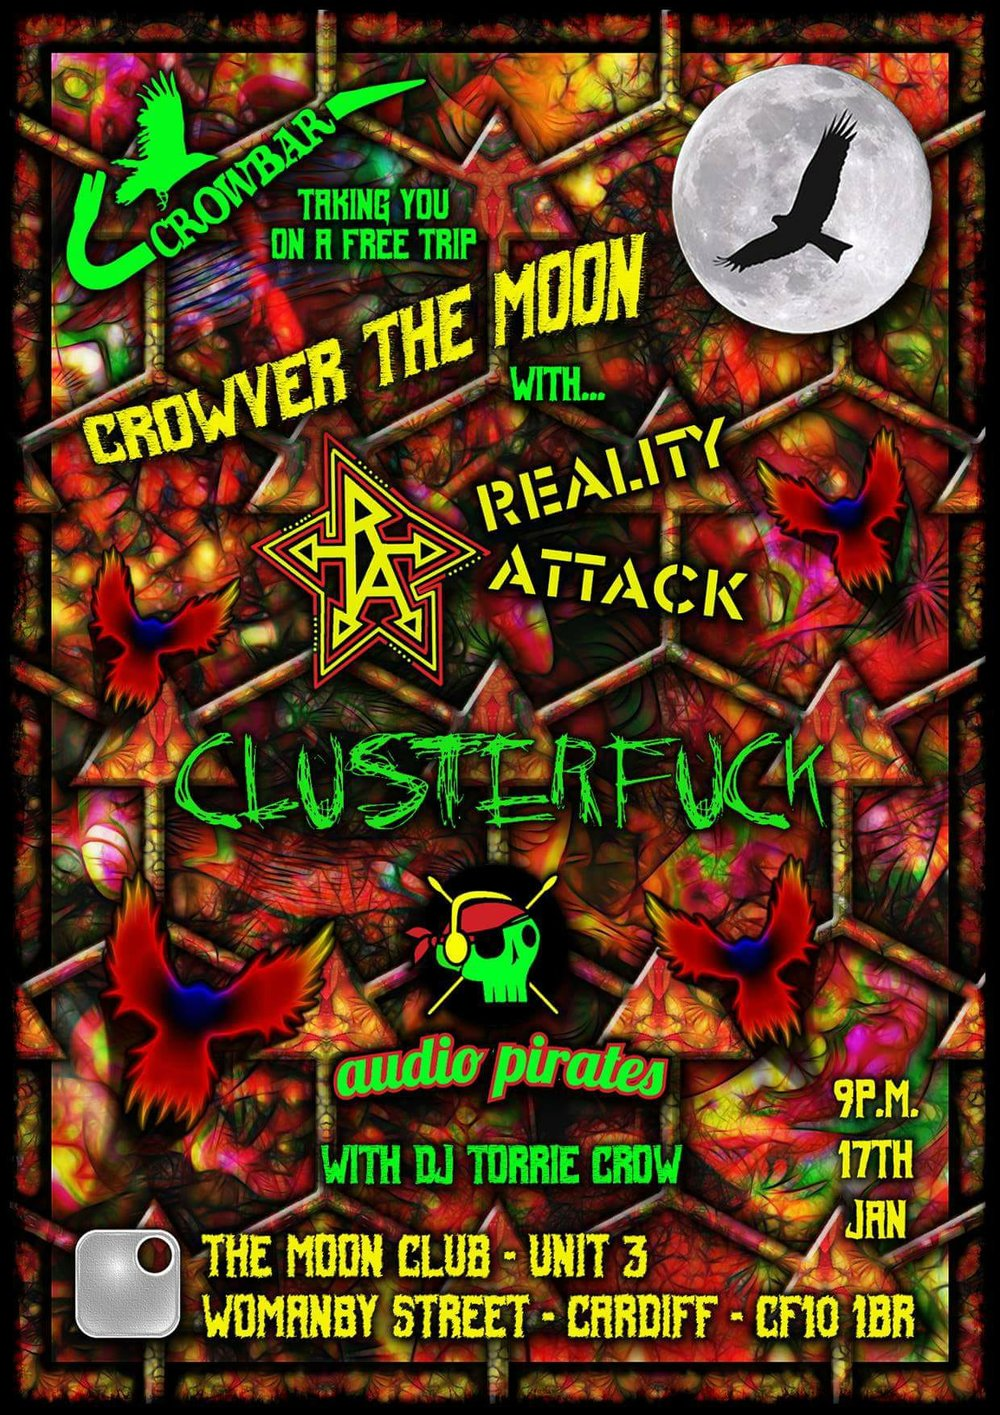 Crowver The Moon - Clusterf*ck - Free For All